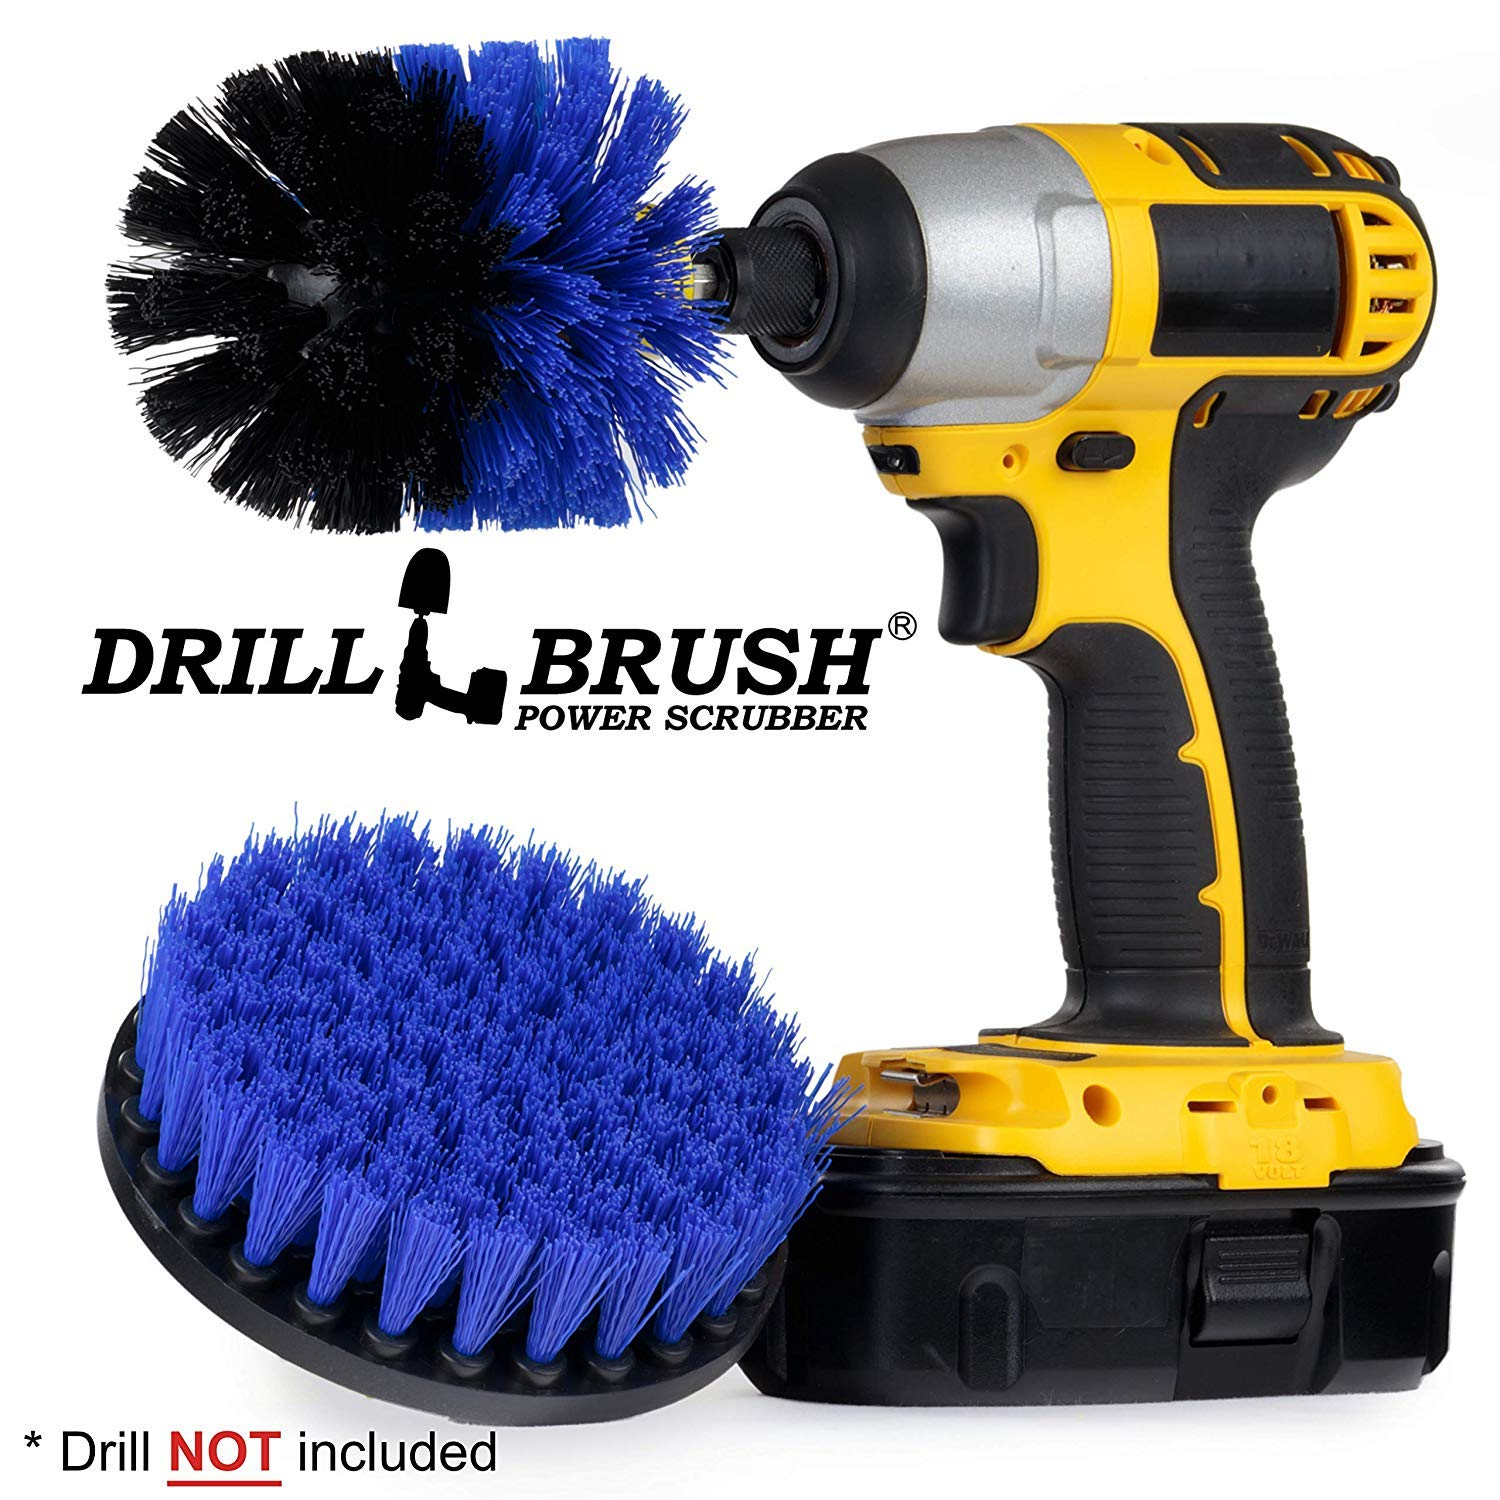 Cleaning Supplies - Marine - Boat Accessories - Drill Brush - Hull Cleaner - Boat - Inflatable - Kayak - Canoe - Raft - Deck - Spin Brush - Pond Scum, Residue, Barnacles, Oxidation by Drillbrush